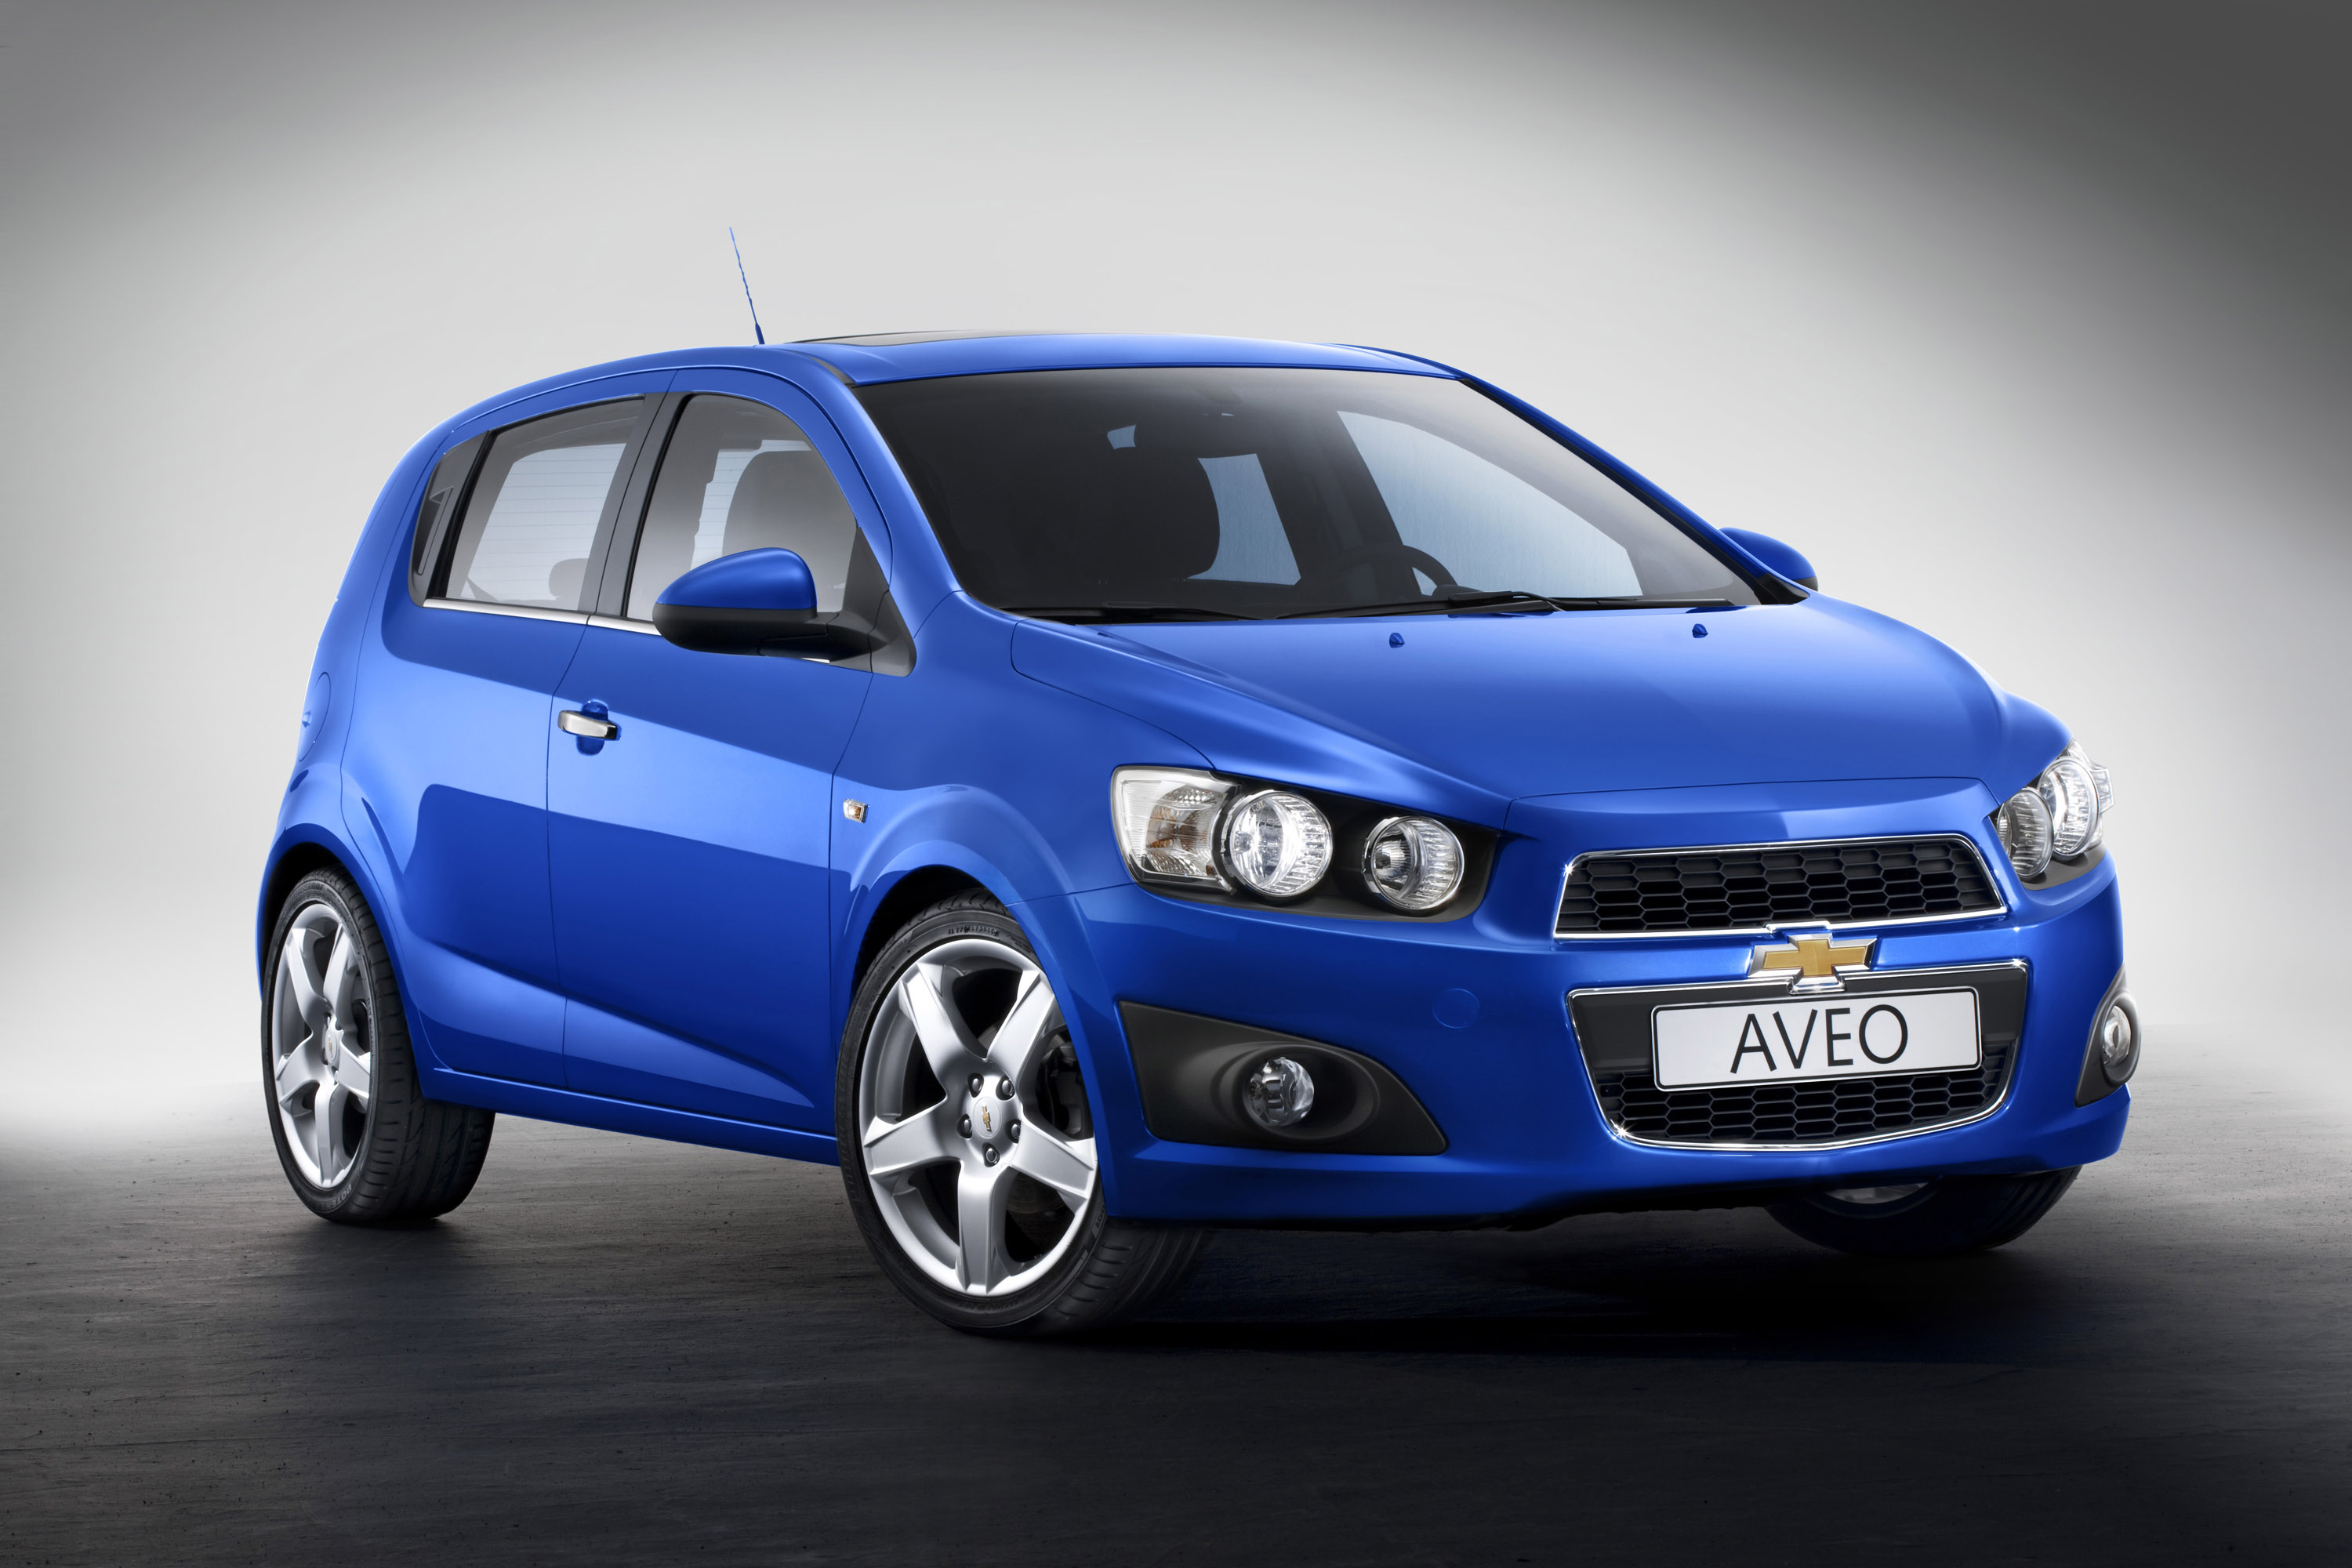 2012 Chevrolet Aveo Goes Into Production